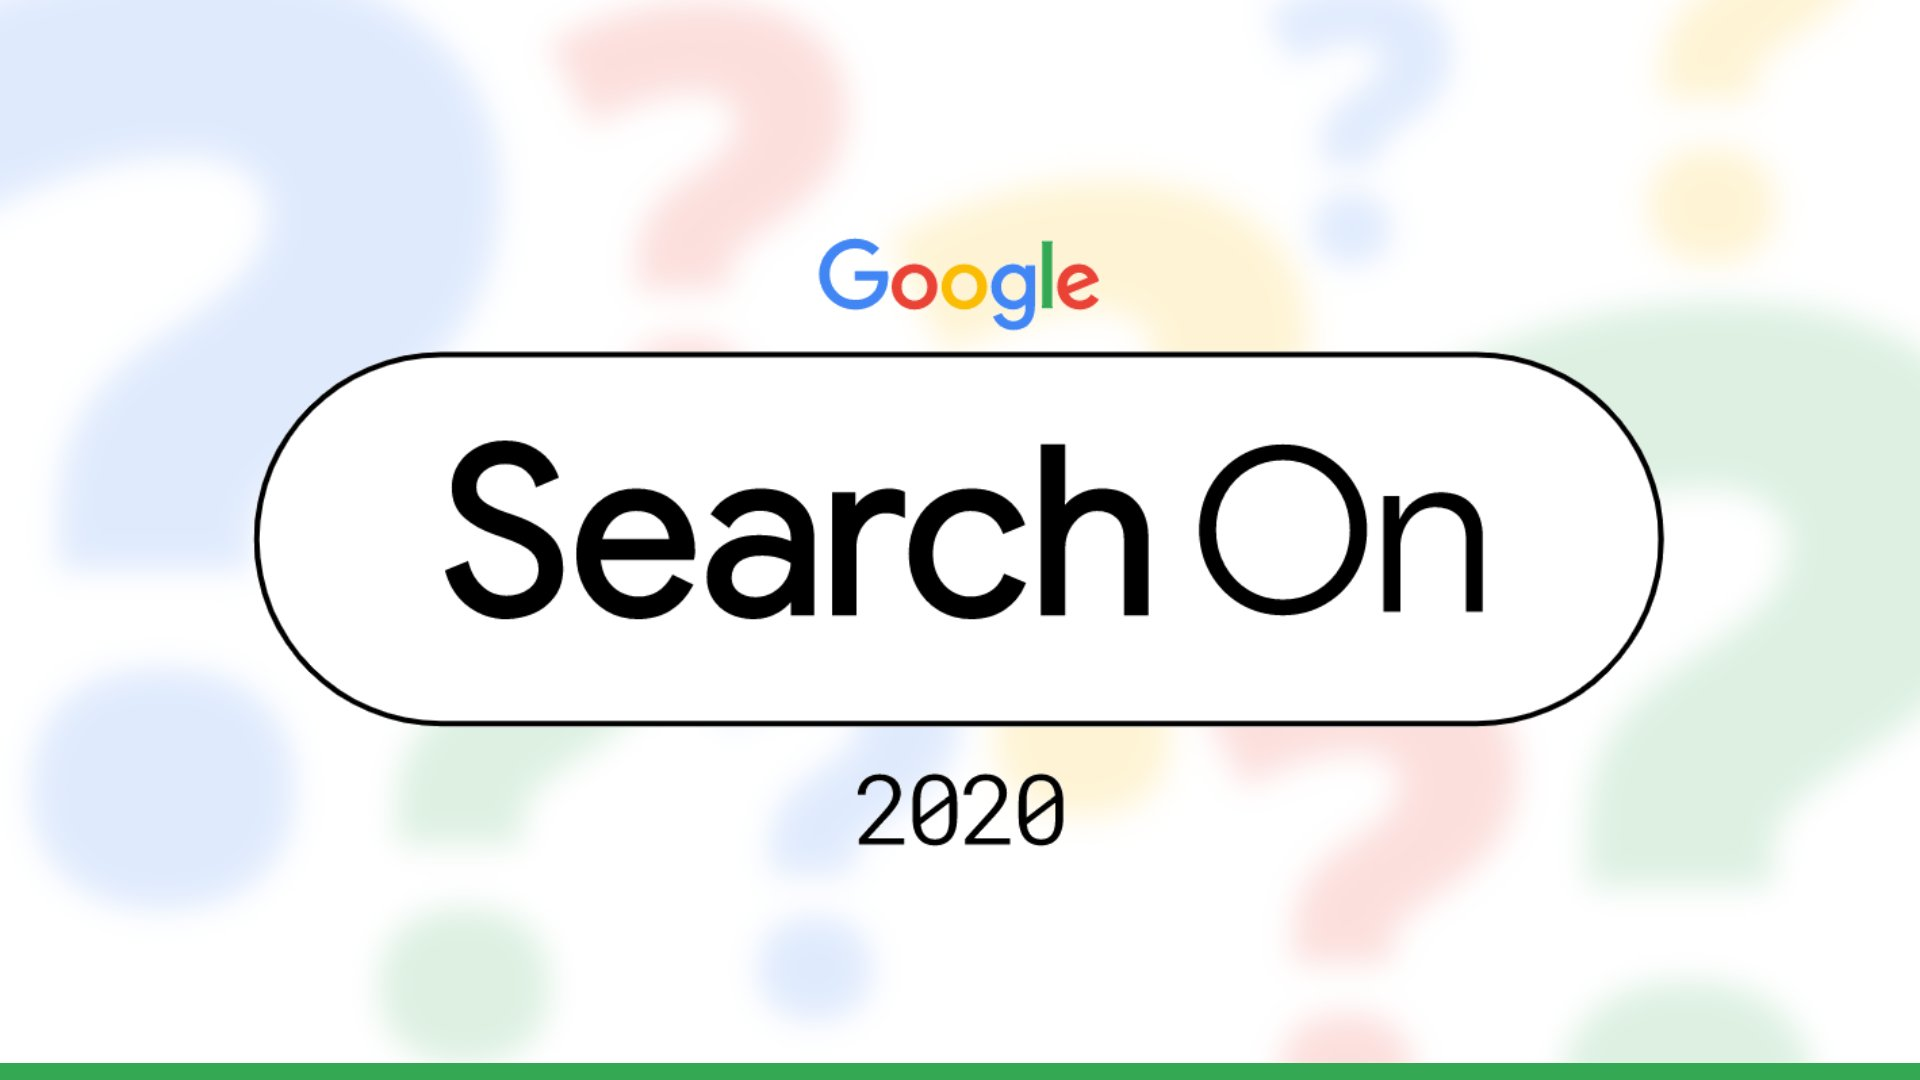 Google to host a mysterious 'Search on 2020' event tomorrow at 12PM PST